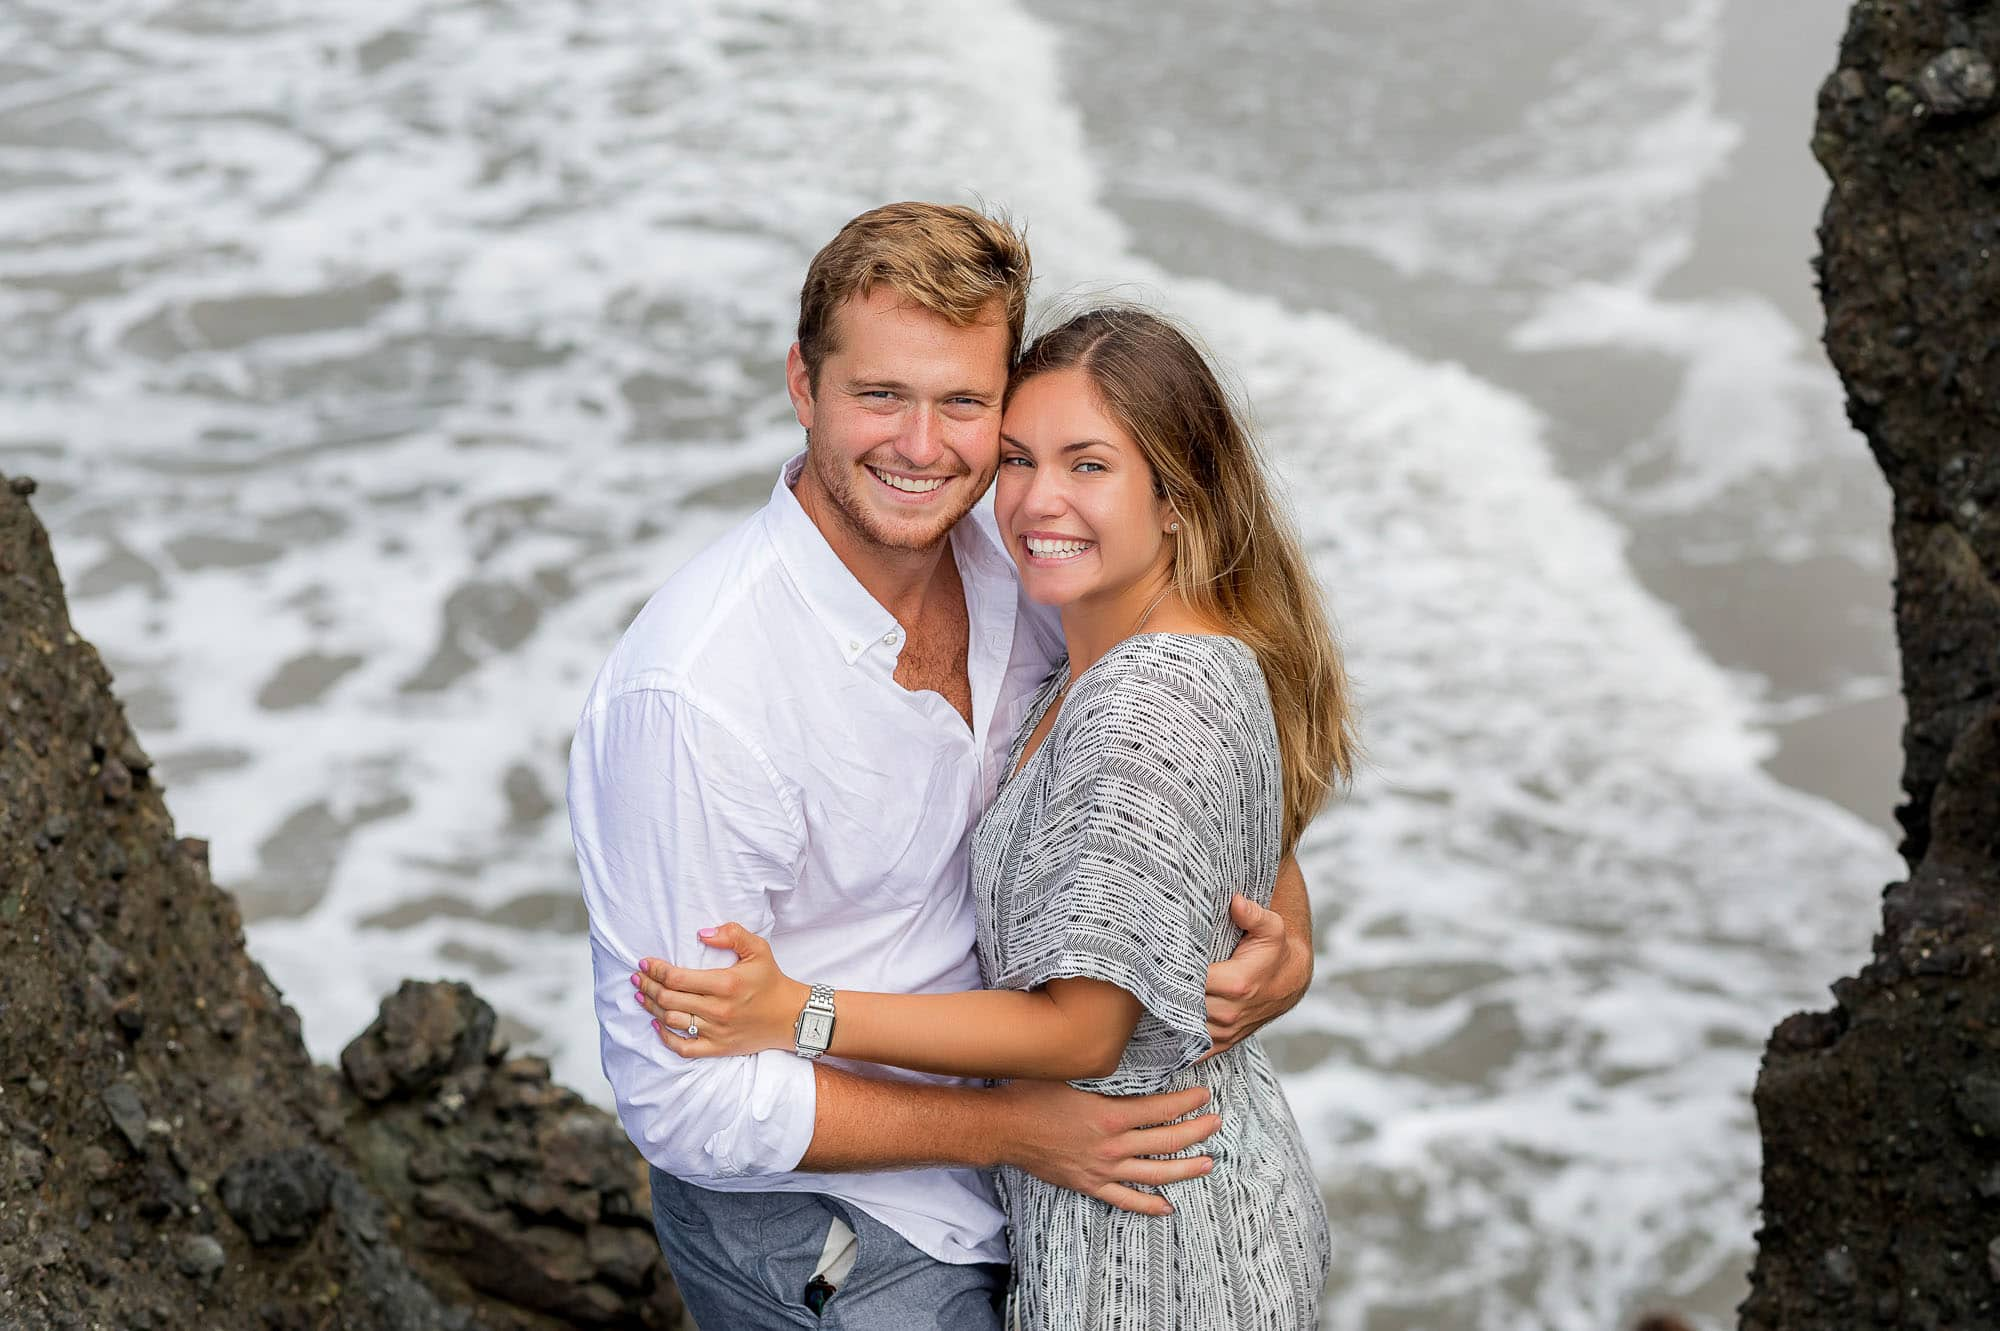 Engagement Proposal in Costa Rica